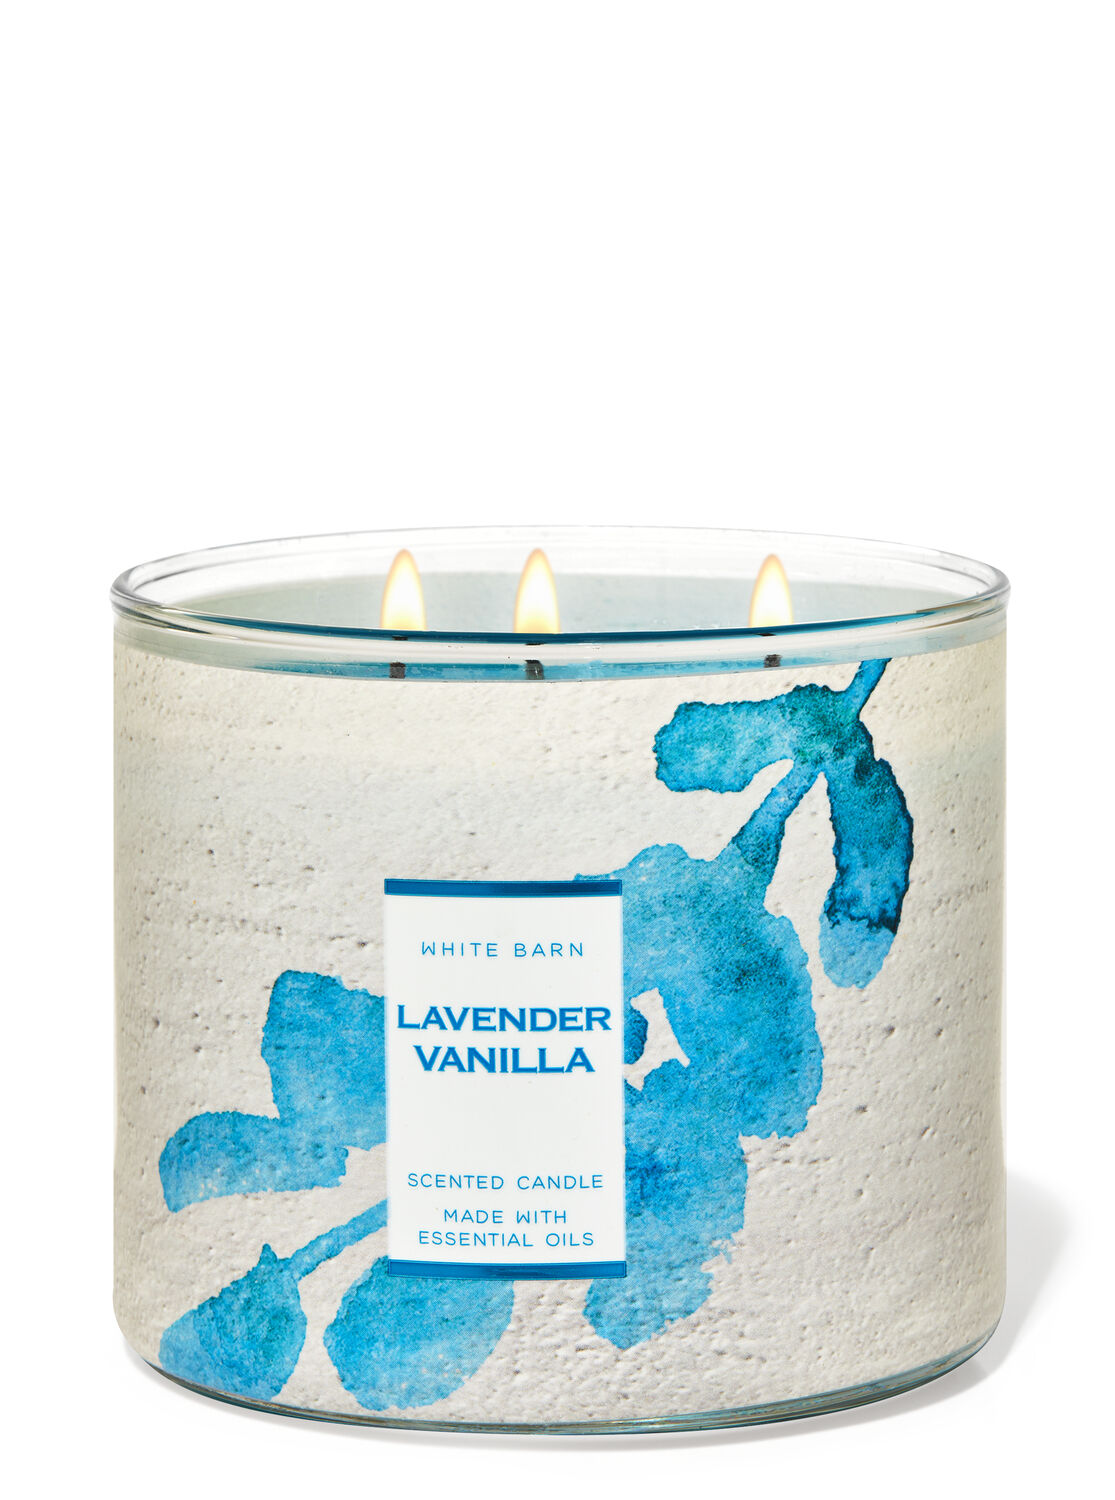 Lavender Vanilla Peppermint Essential Oil Candle all natural candle beeswax candle therapeutic candle aromatherapy candle relaxation candle